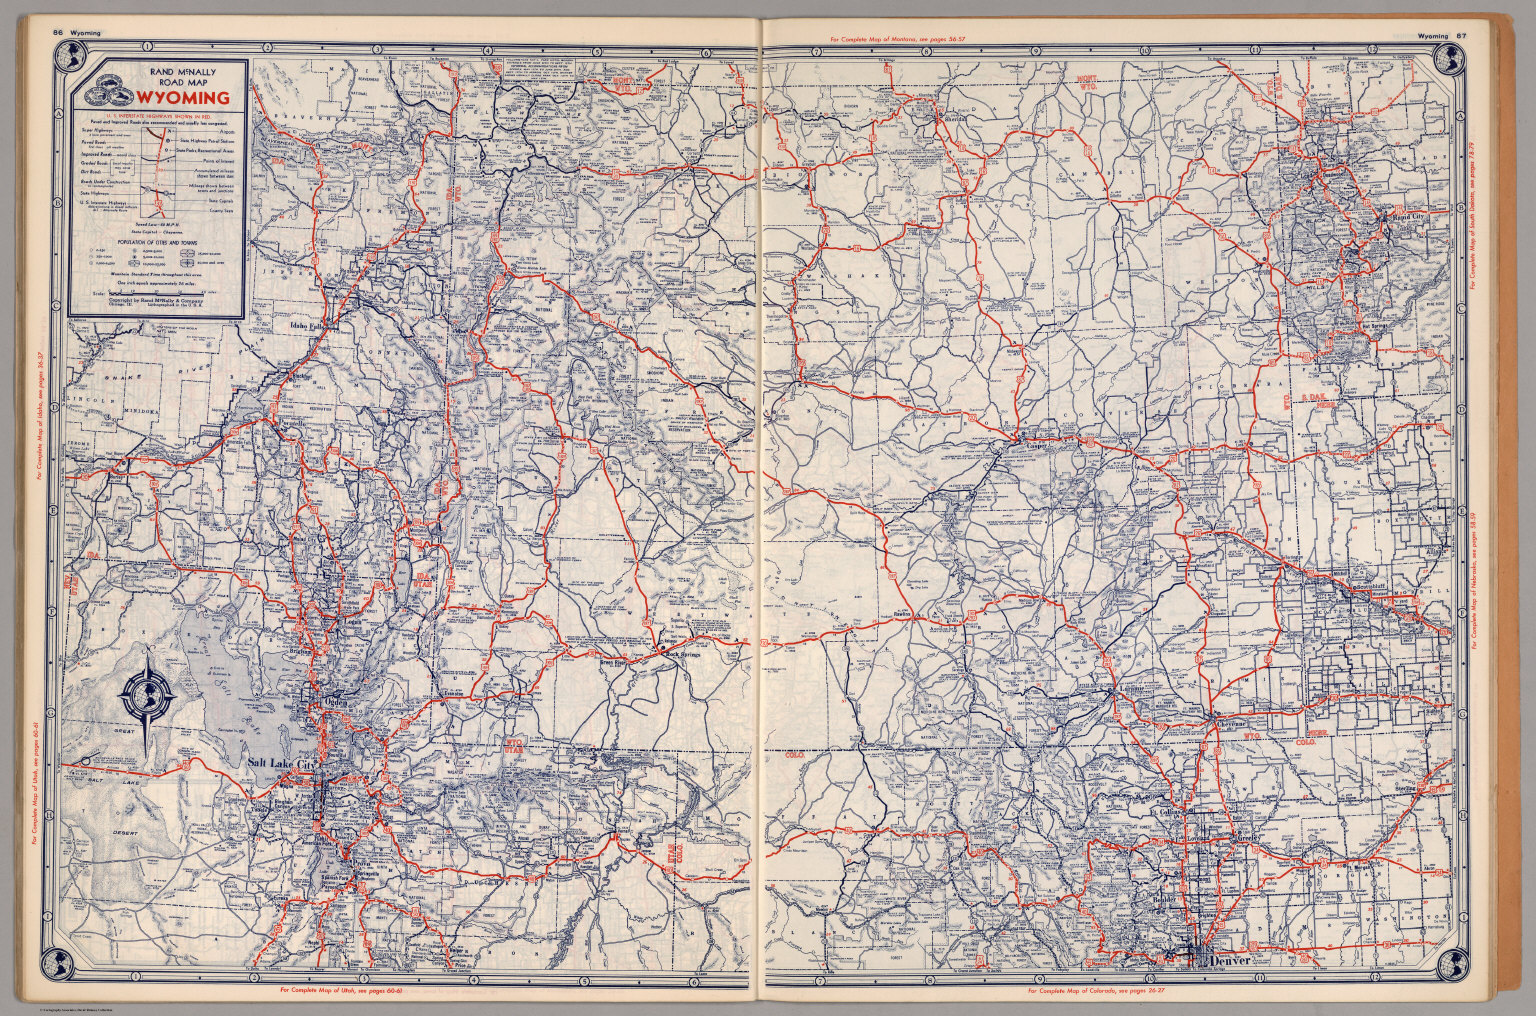 Road Map Of Wyoming David Rumsey Historical Map Collection - Map if wyoming